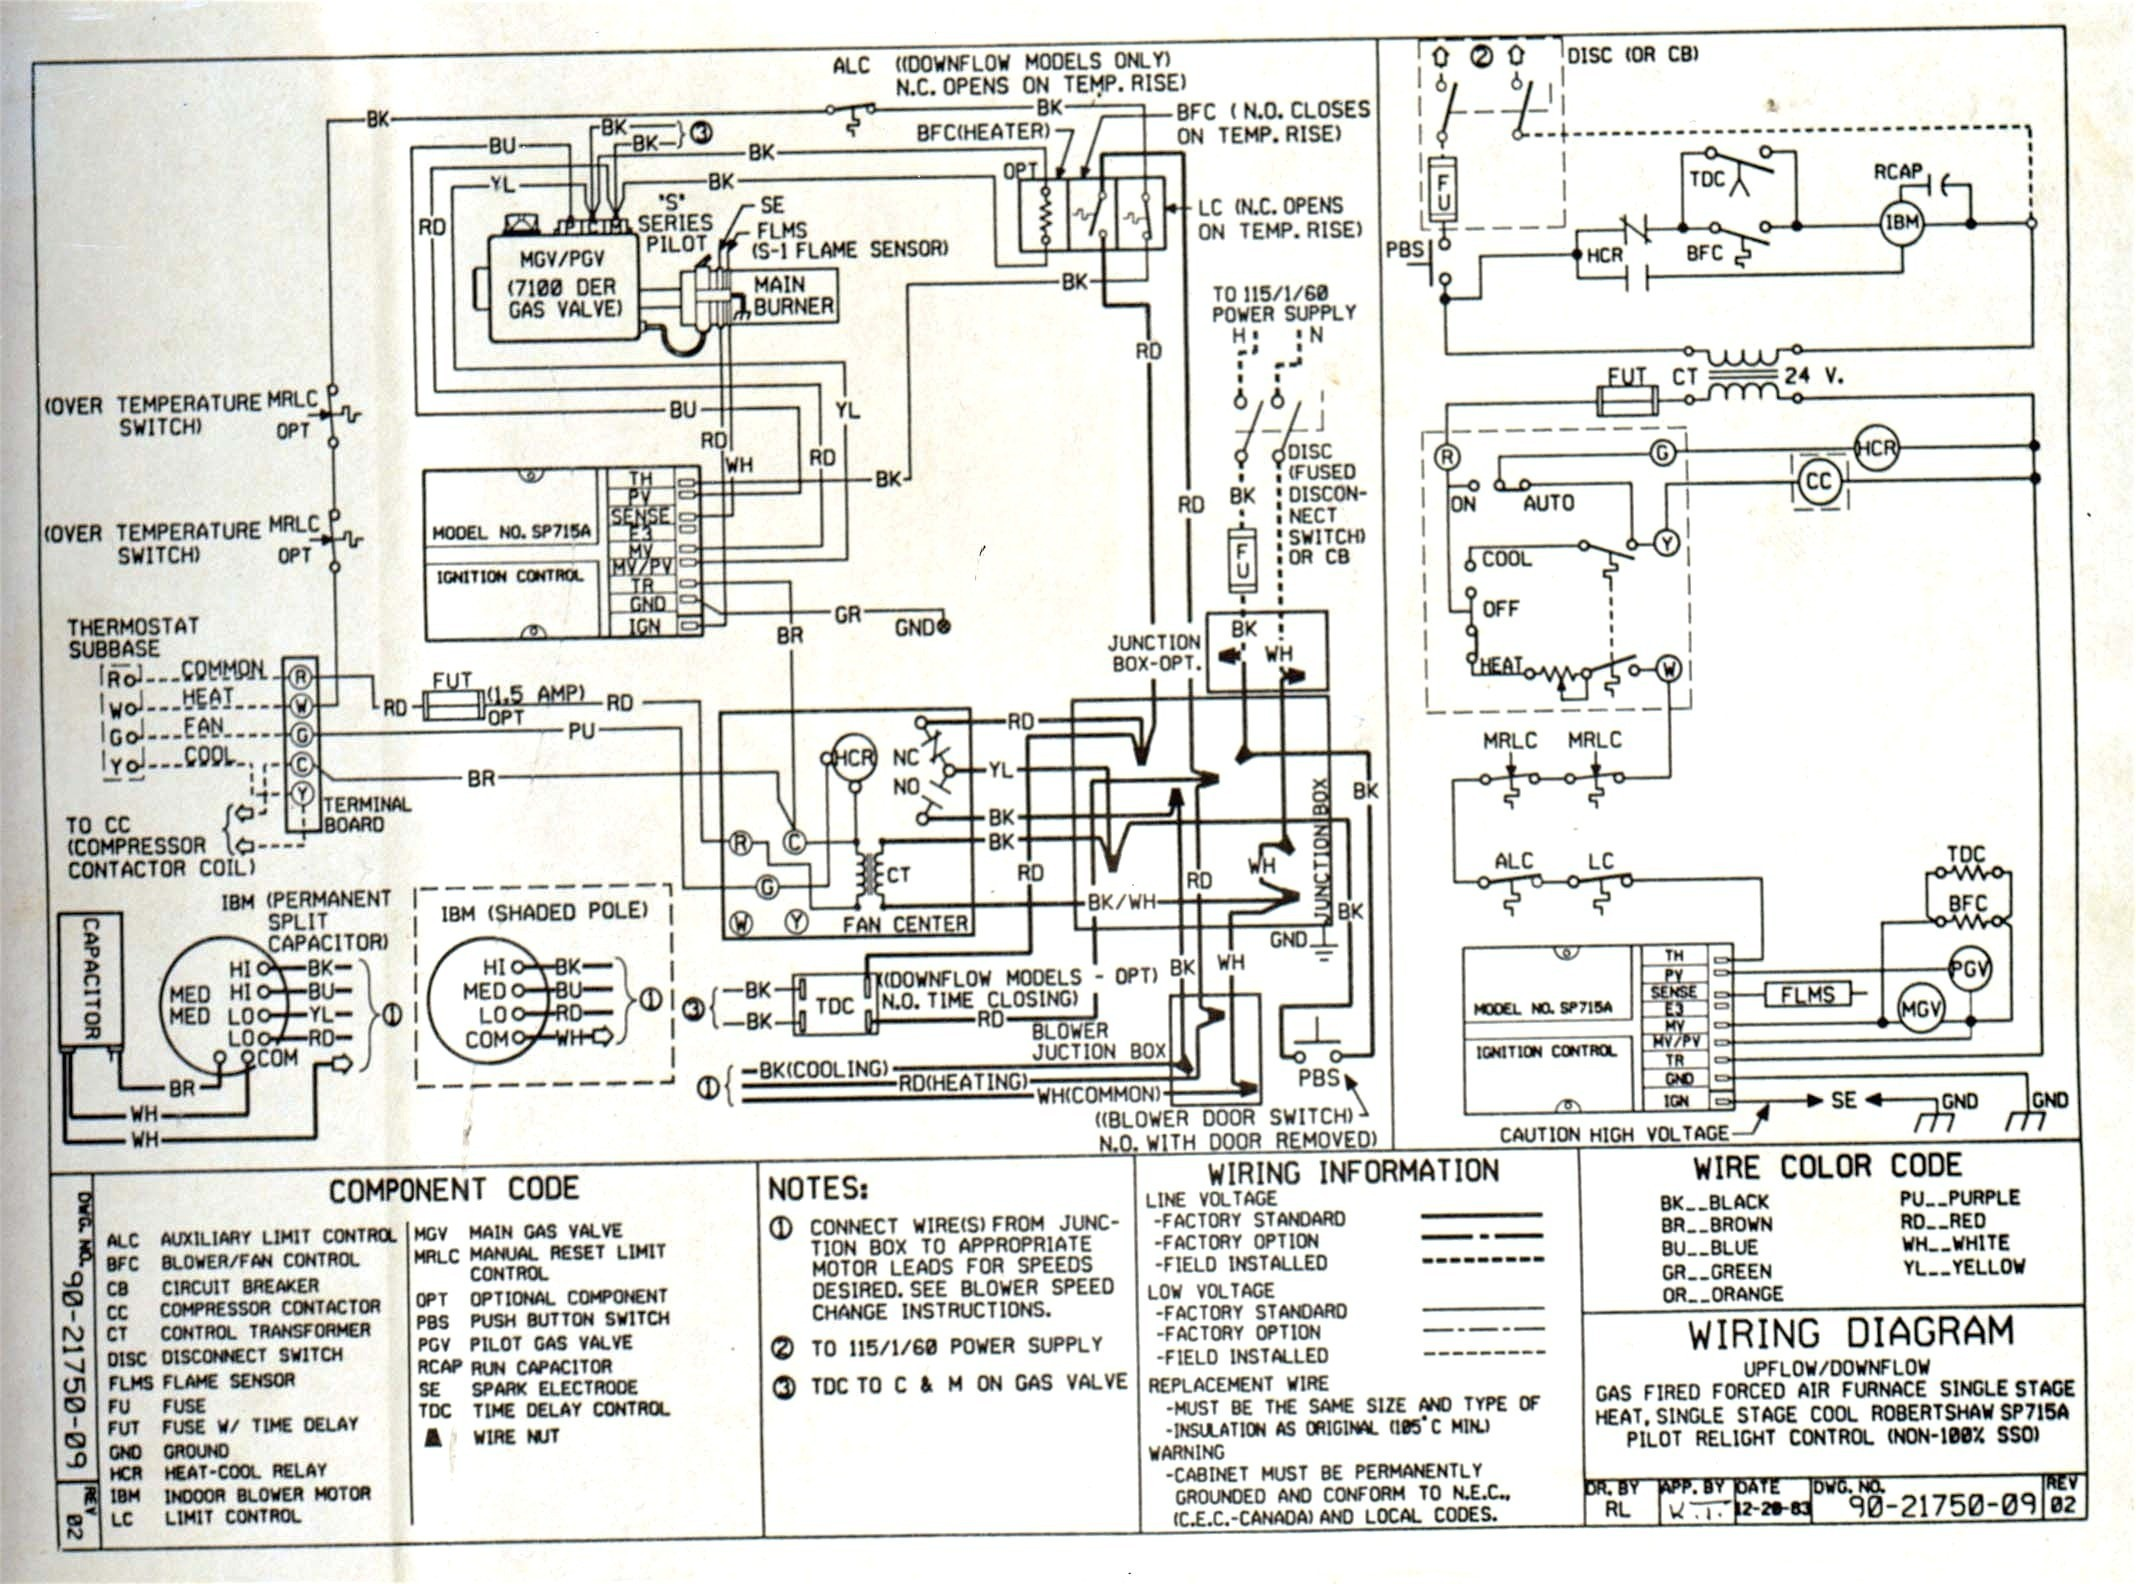 Air Conditioning Condensing Unit Wiring Diagram Inspirationa Wiring Diagram Ac Unit New Mcquay Air Conditioner Wiring